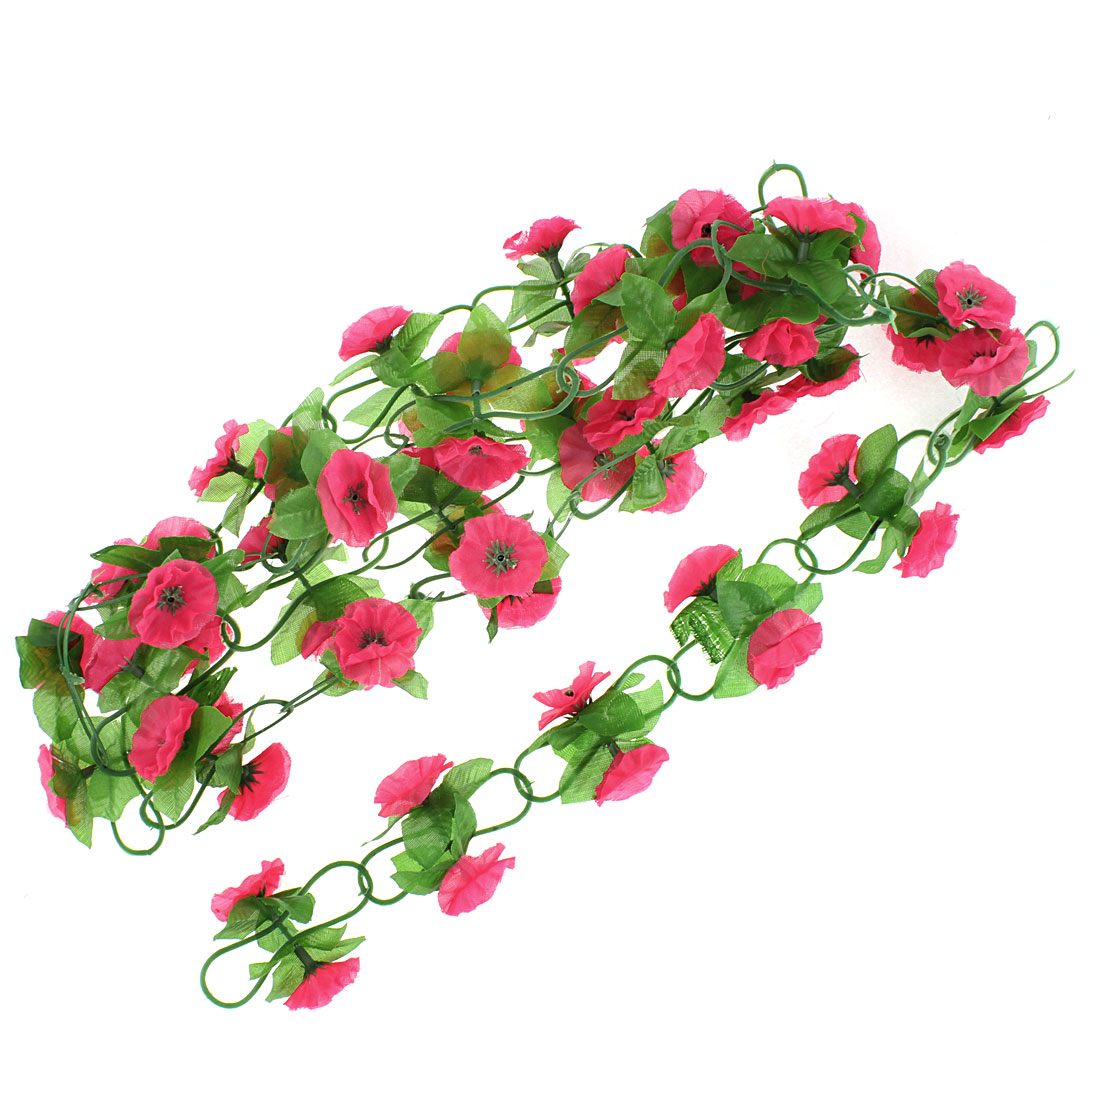 Party Decor Green Leaves Red Plastic Flower Simulated Hanging Vine Plant